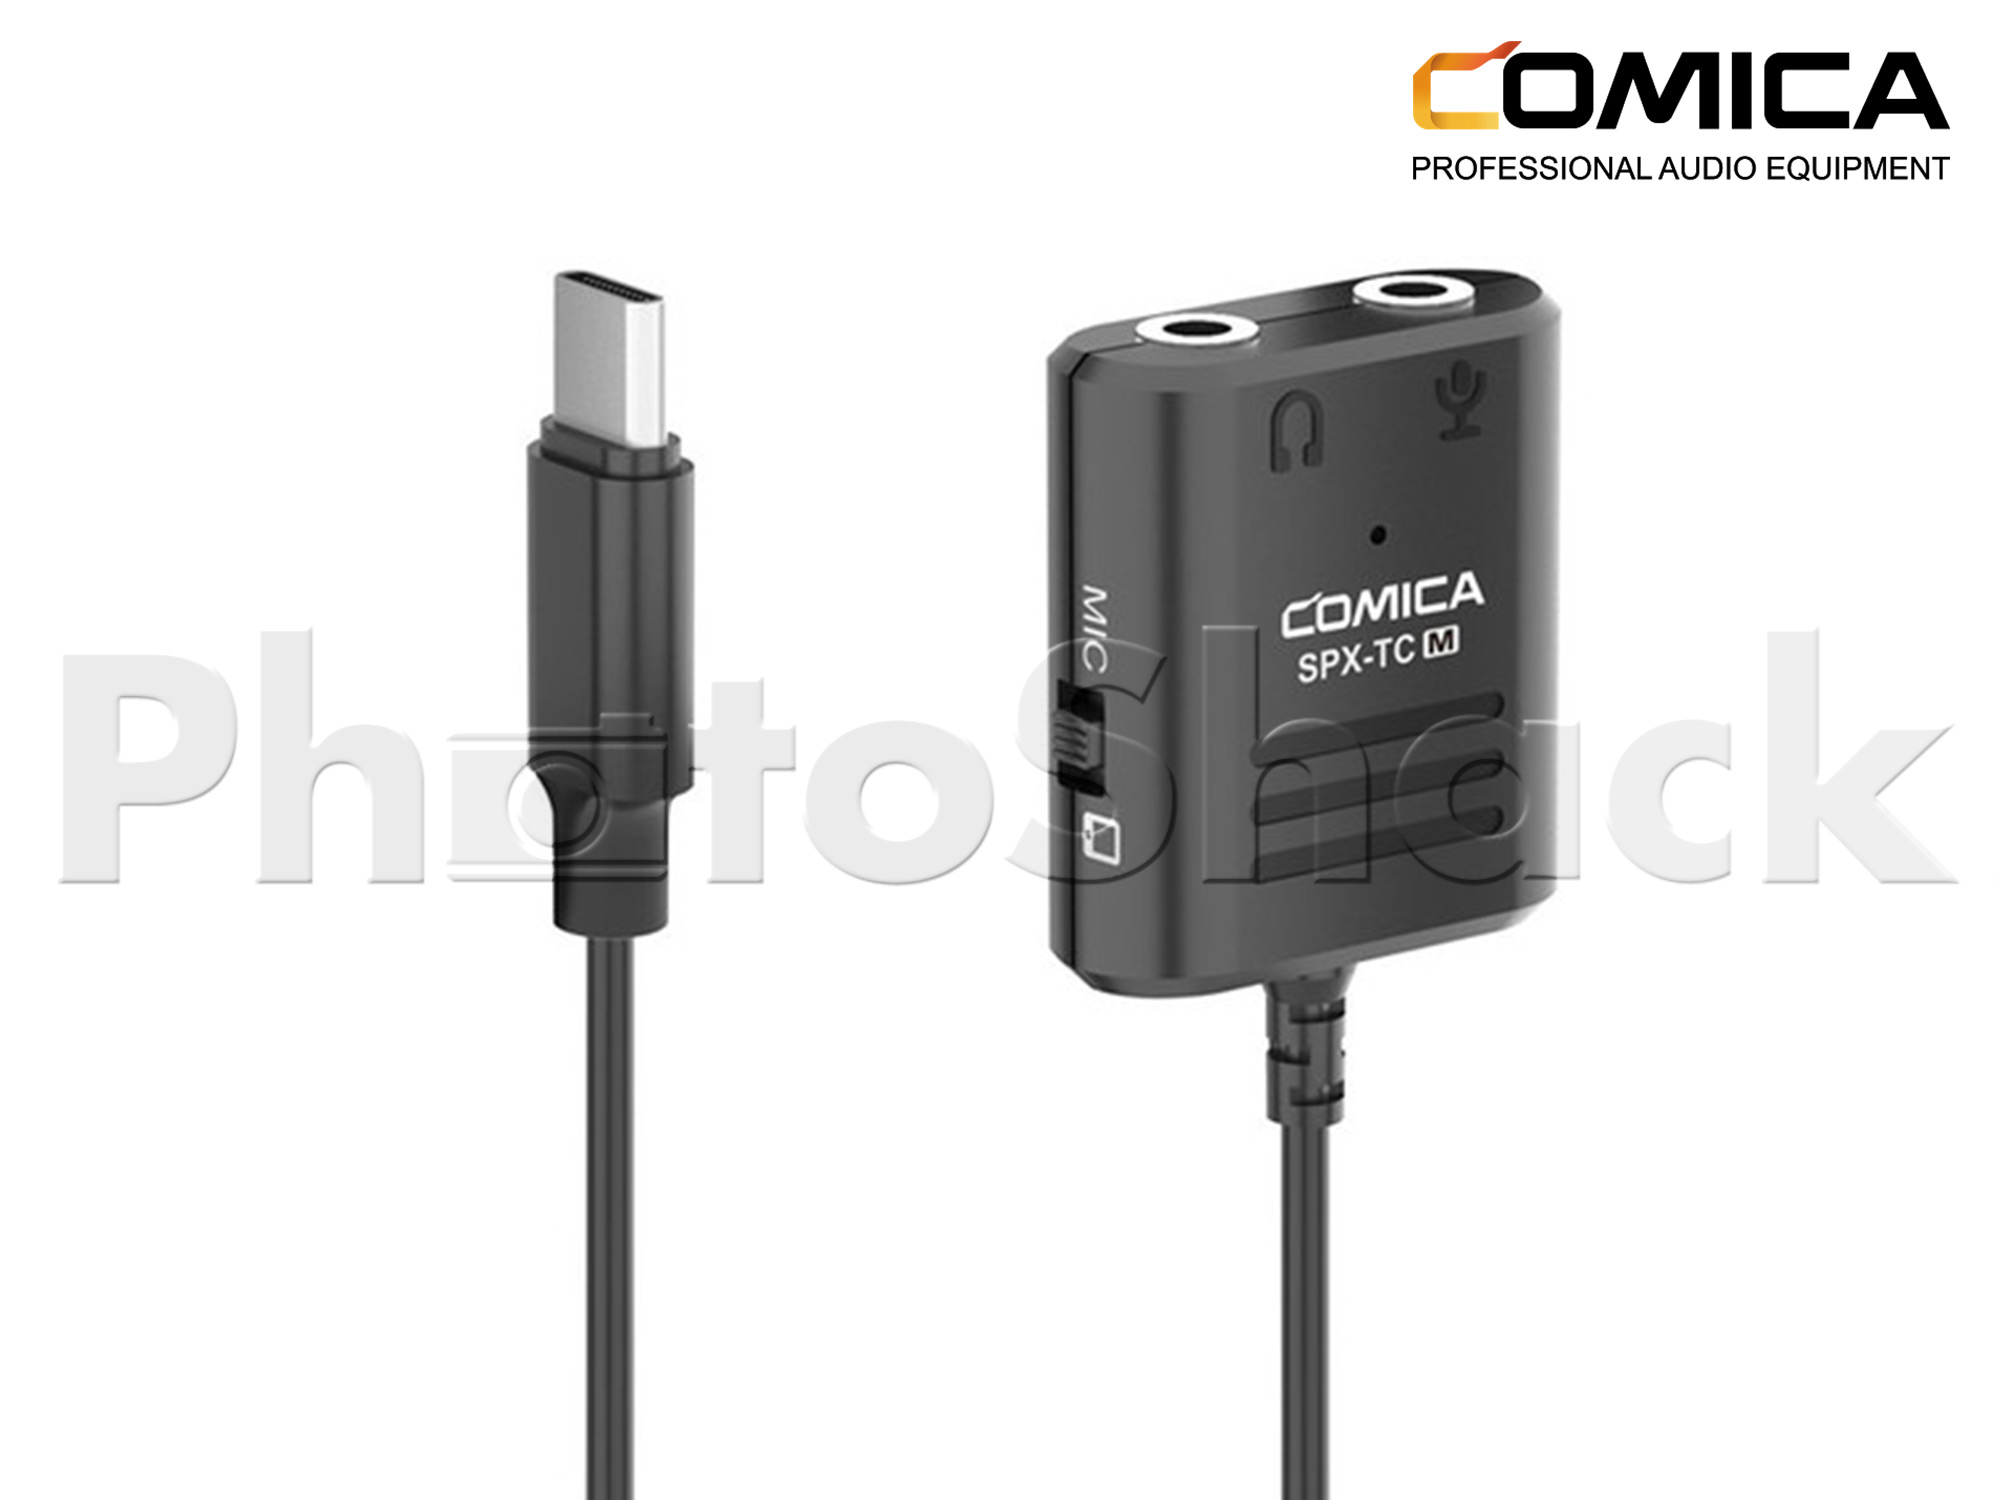 Comica Audio CVM-SPX-TC(M) 3.5mm TRS/TRRS to USB Type-C to Female Adapter Cable